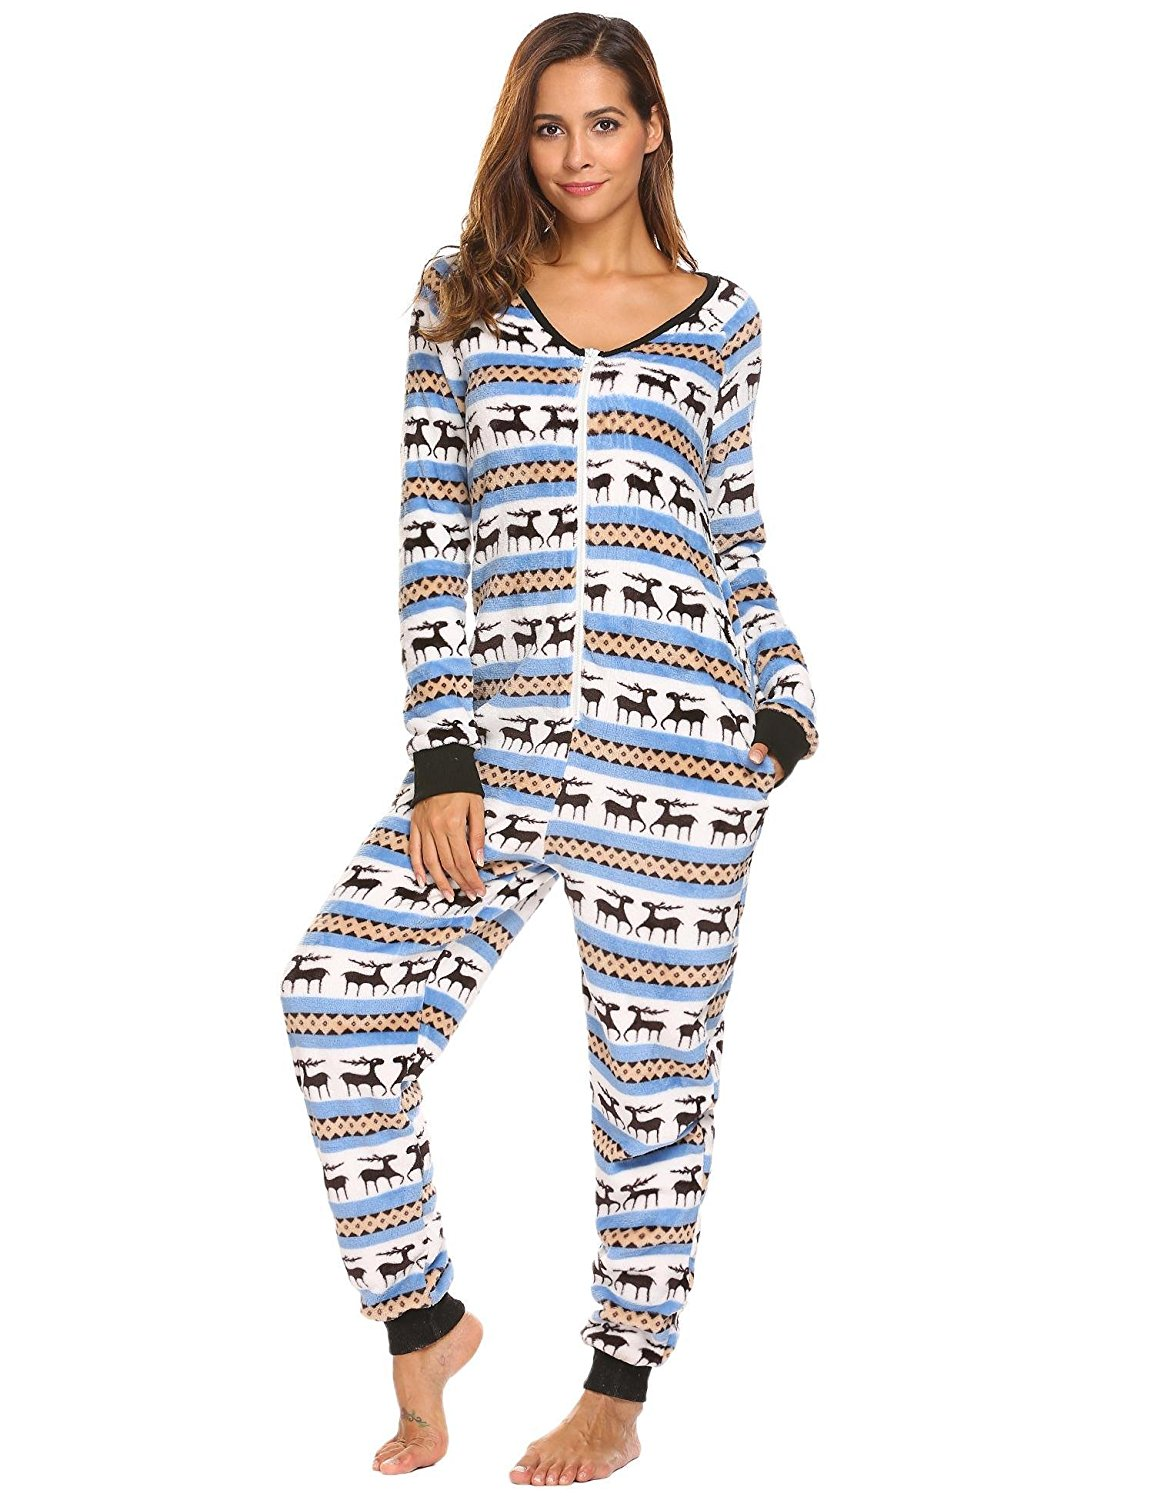 f6fde51ebd Get Quotations · Dickin Womens Onesie Pajama Jumpsuit Adult Non Footed  Fleece Plush Pajamas